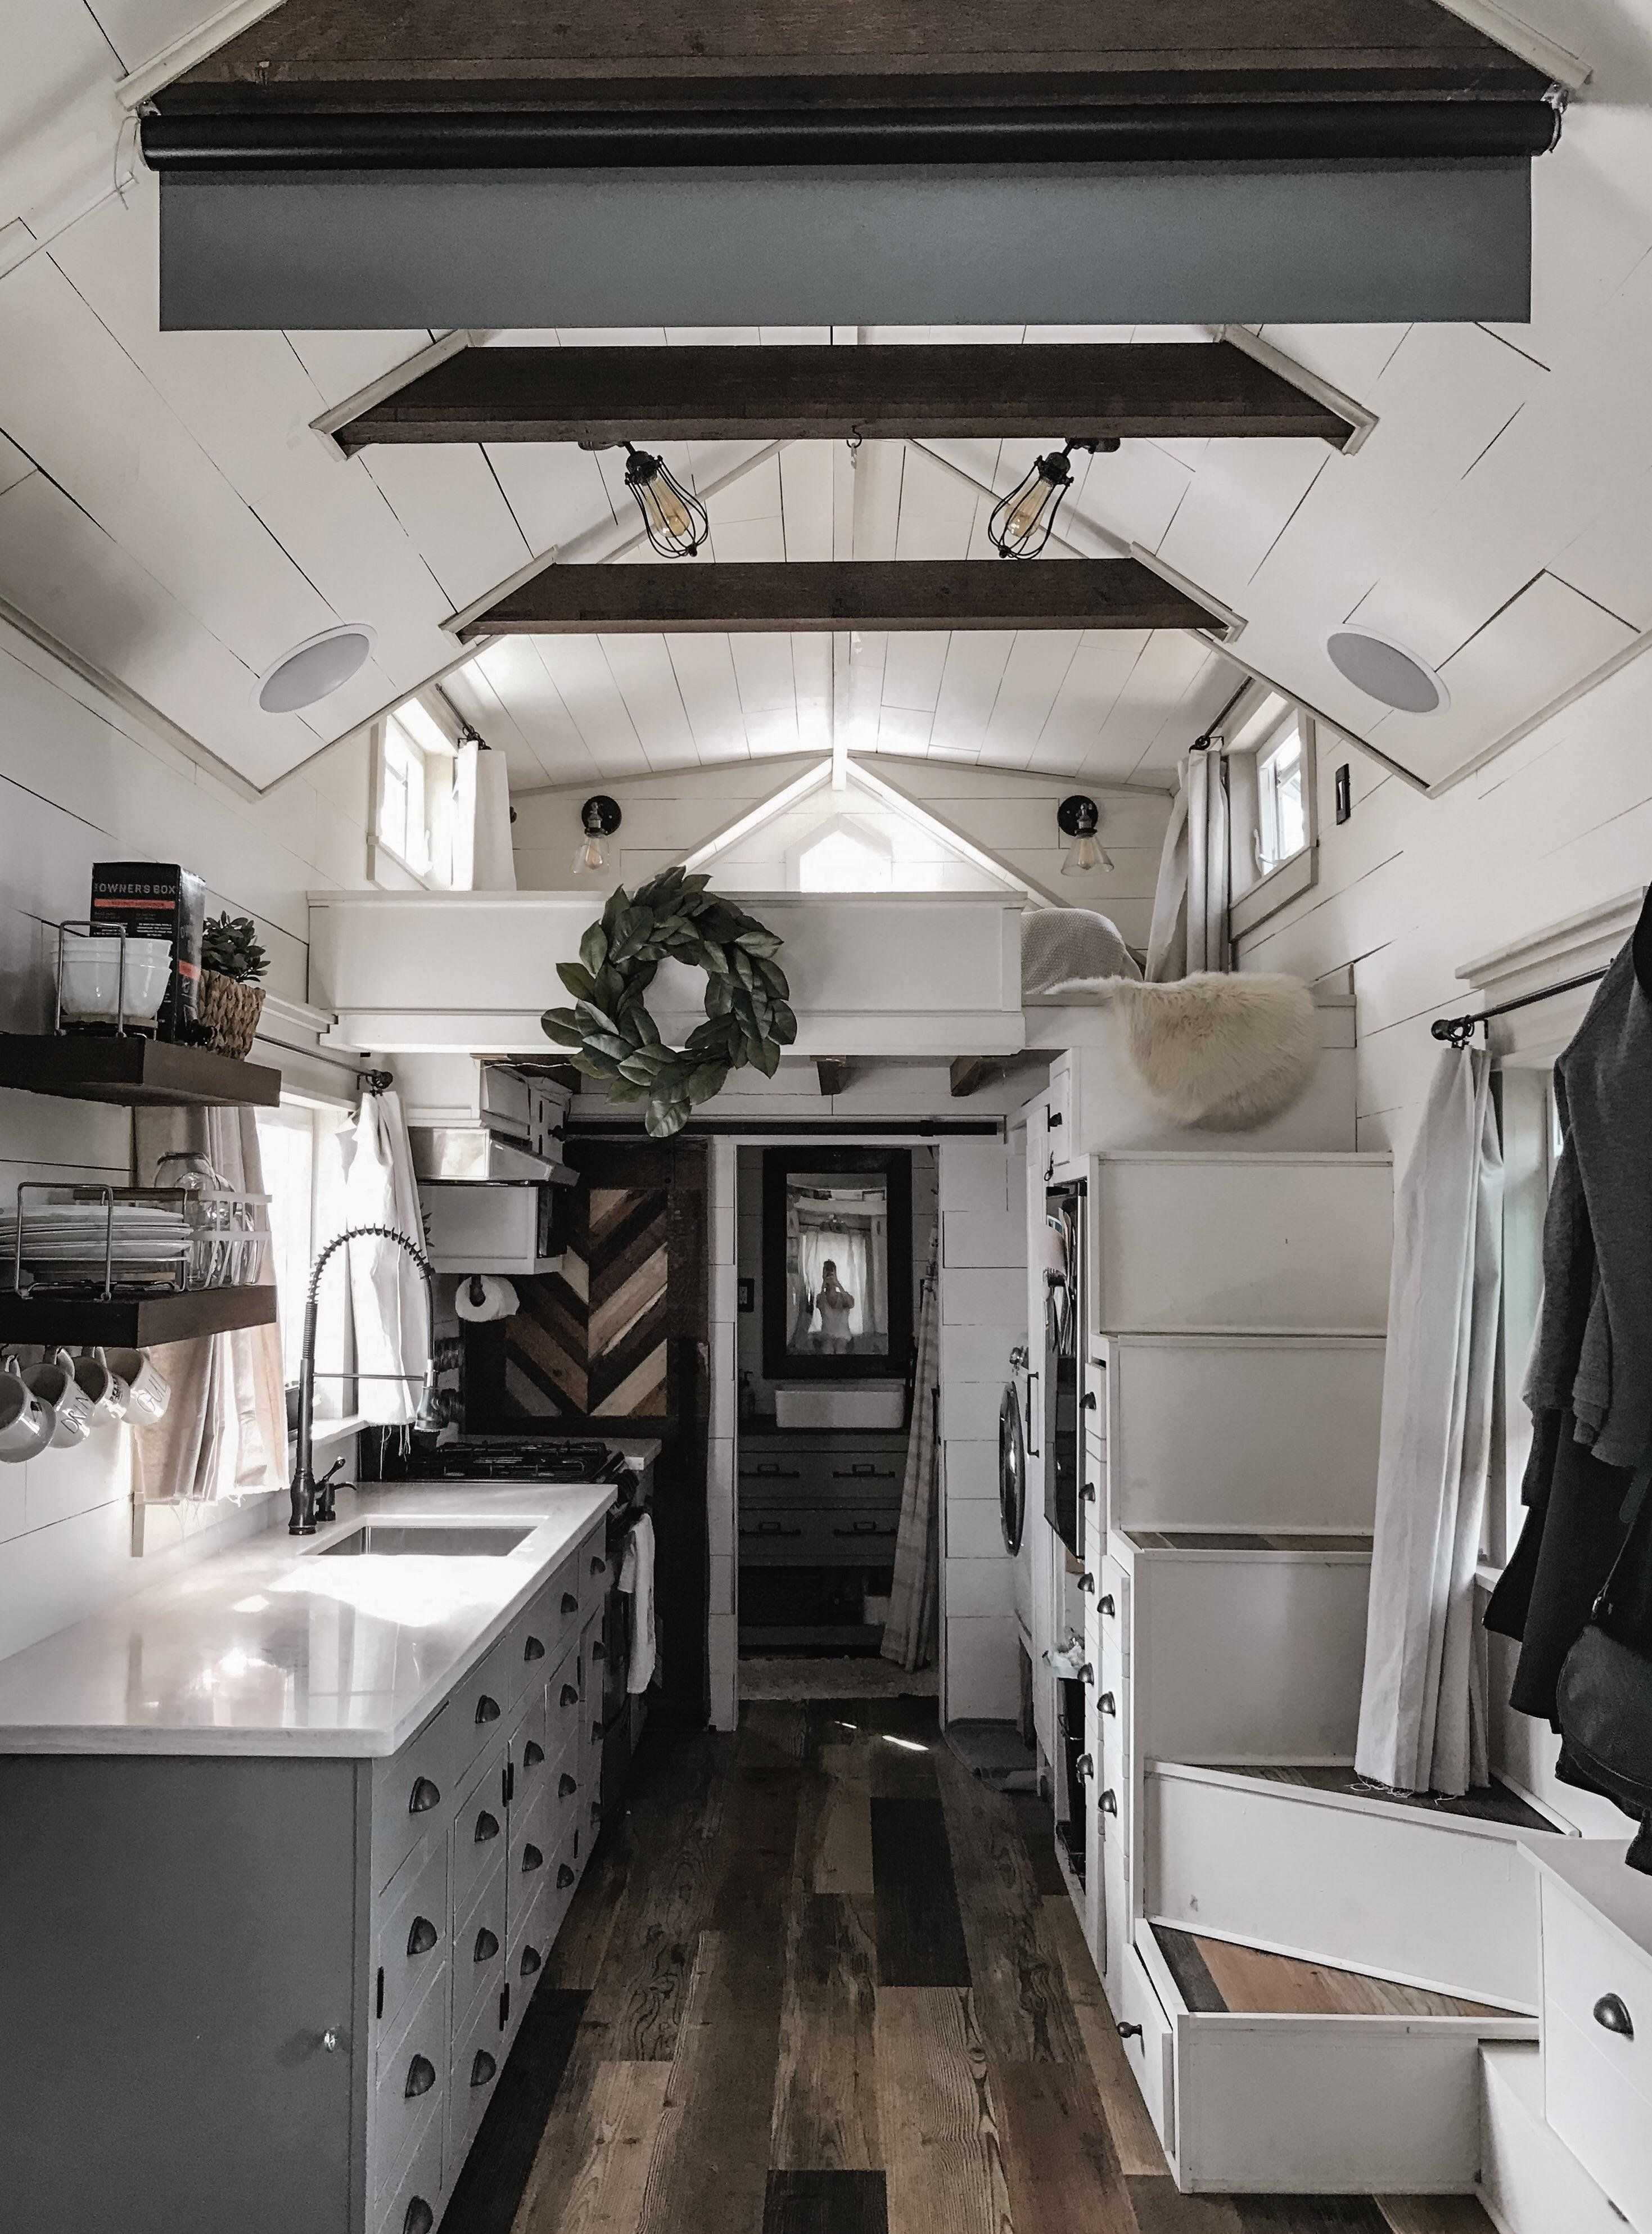 Our self-built tiny home on wheels [25x25] : RoomPorn  Tiny